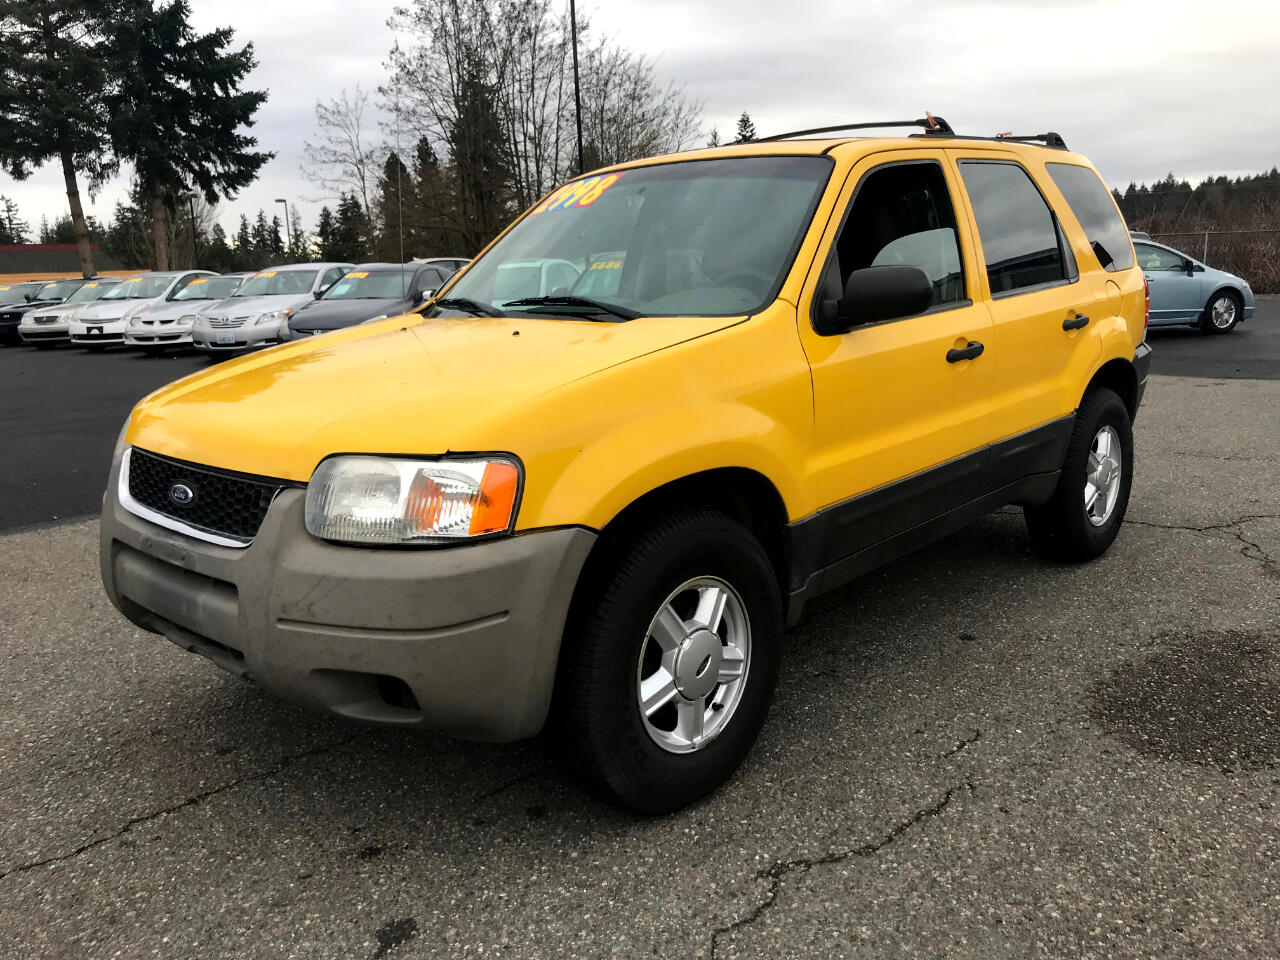 2003 Ford Escape XLT Popular 2 2WD